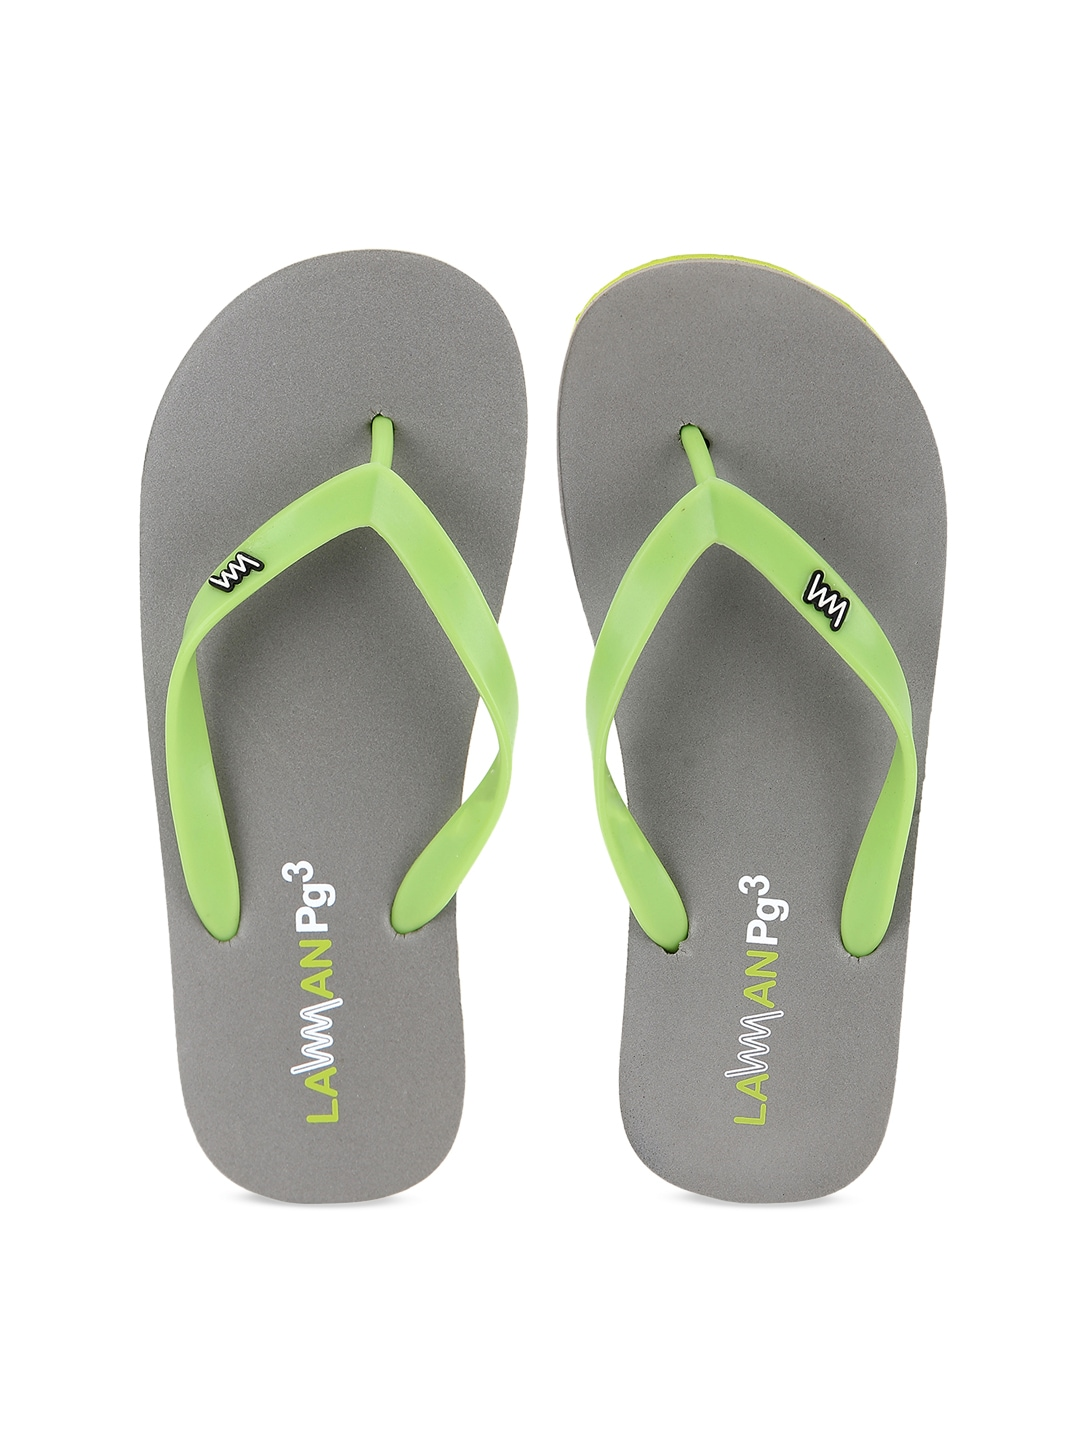 c72e9a5b5f07 Lawman Pg3 Flip Flops - Buy Lawman Pg3 Flip Flops online in India